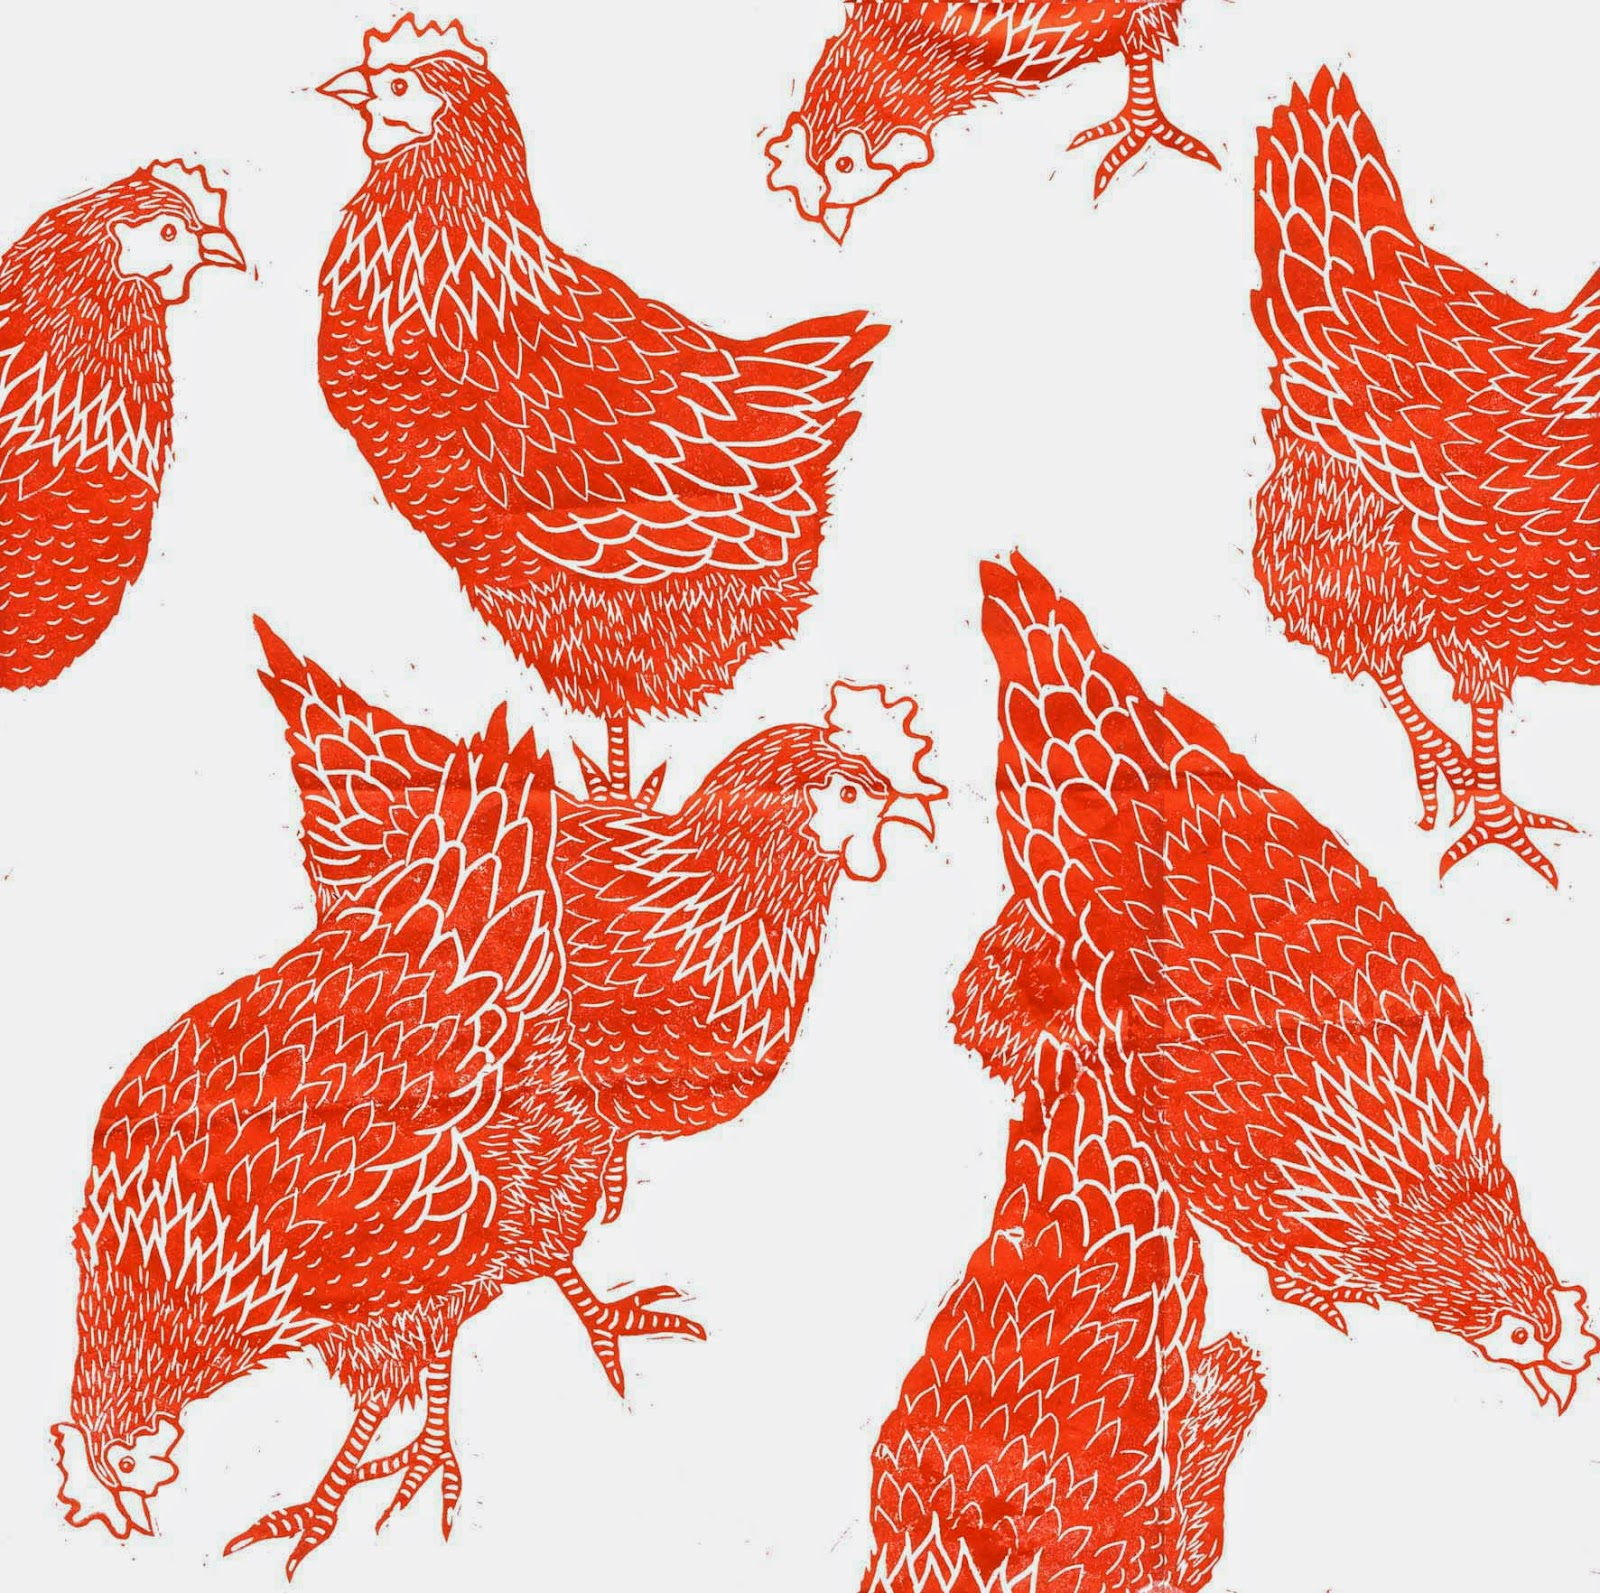 Single hen linocut print